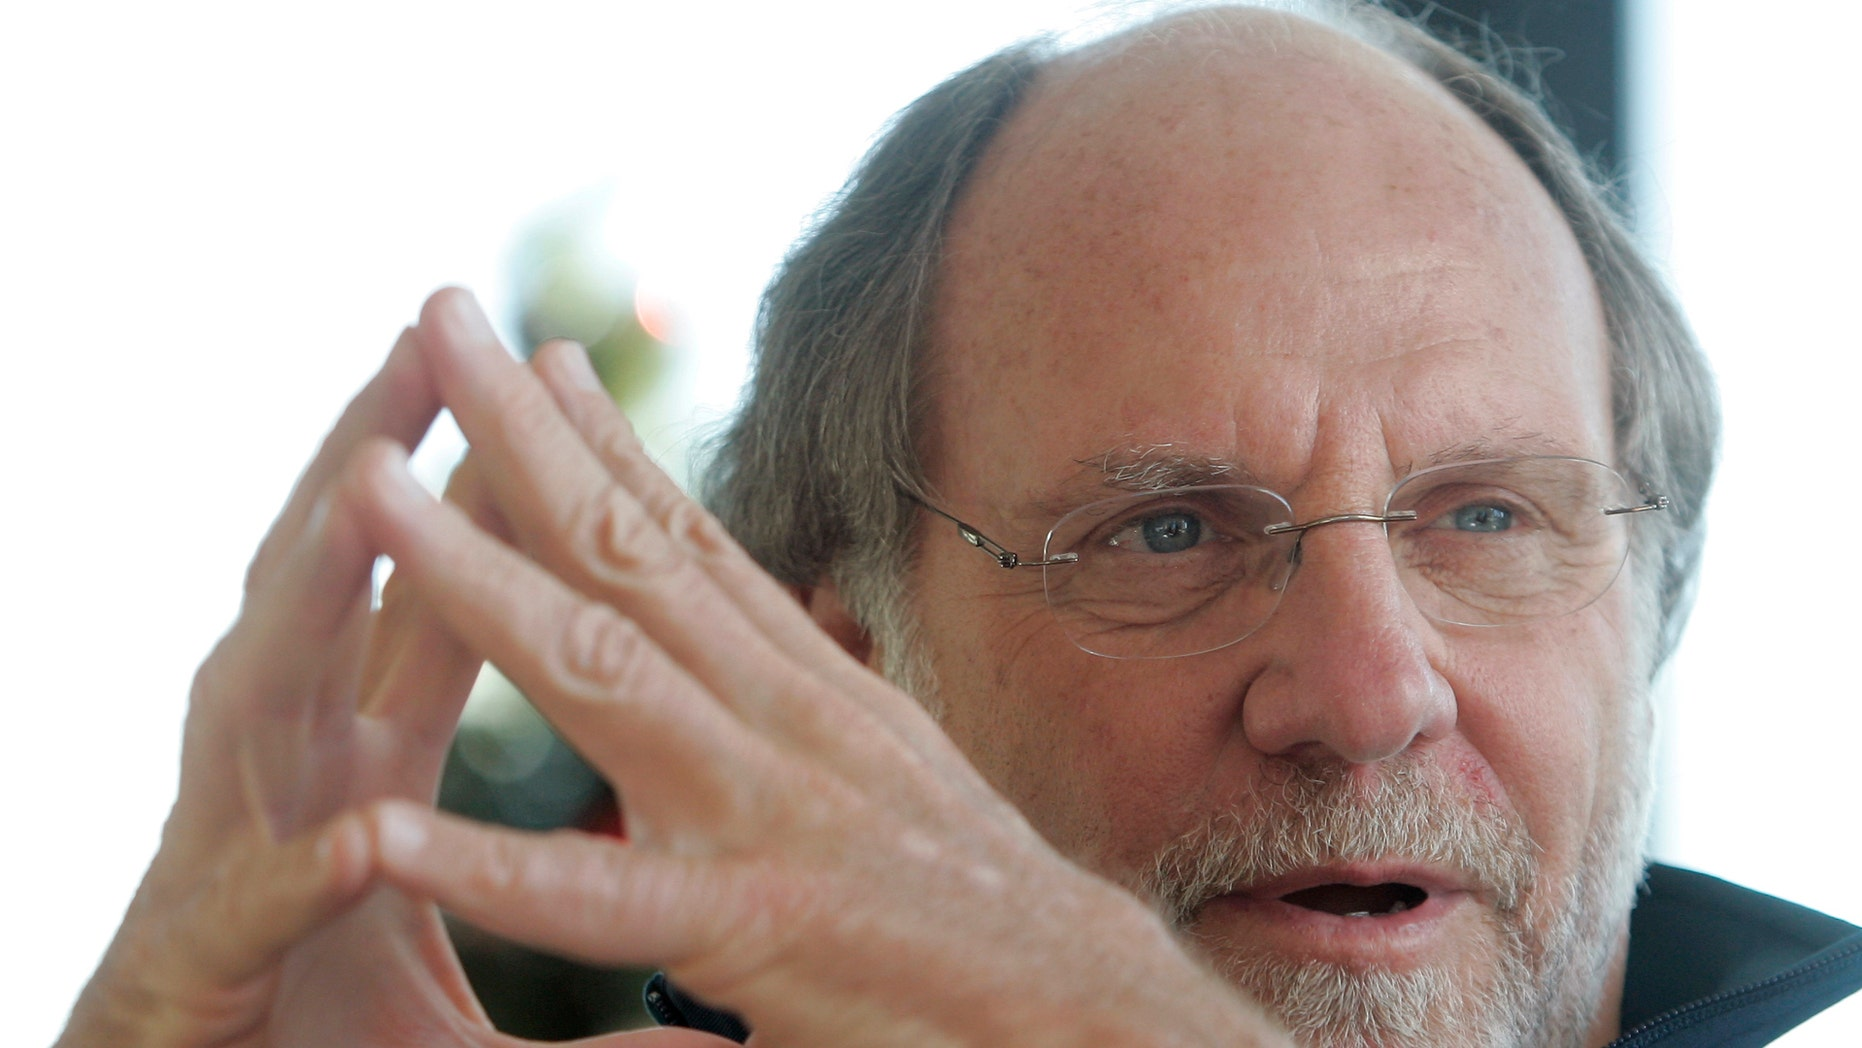 In this Jan. 9, 2011 file photo, former New Jersey Gov. Jon S. Corzine reflects on his four year term in office during an interview with The Associated Press at his home in Hoboken, N.J.